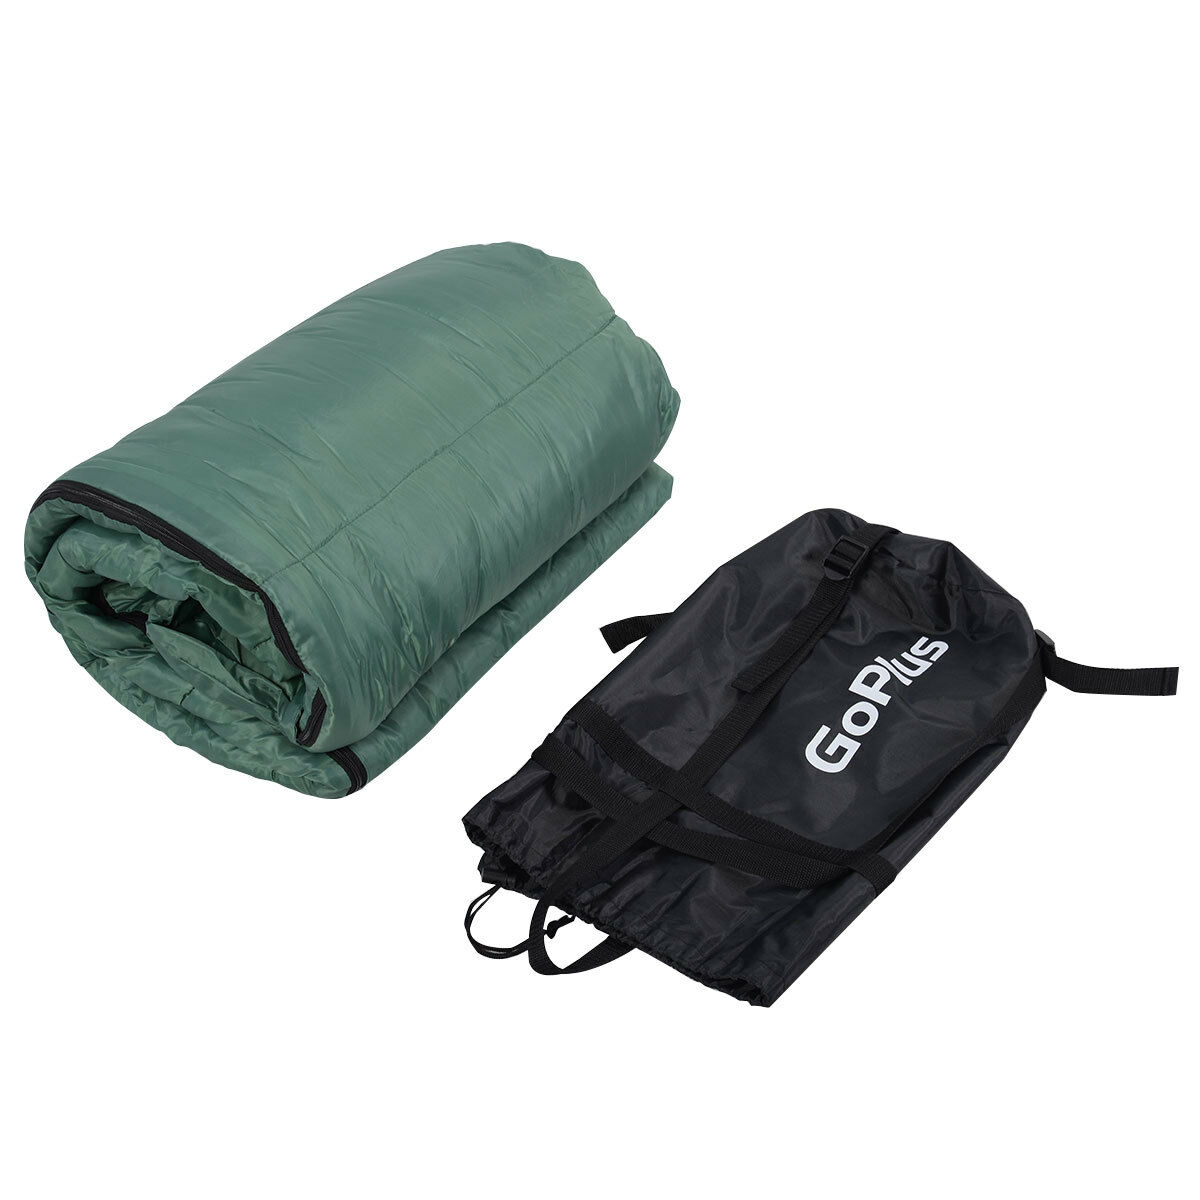 New-Mummy-Waterproof-Outdoor-Sleeping-Bag-Camping-Travel-Hiking-W-Carrying-Bag thumbnail 12